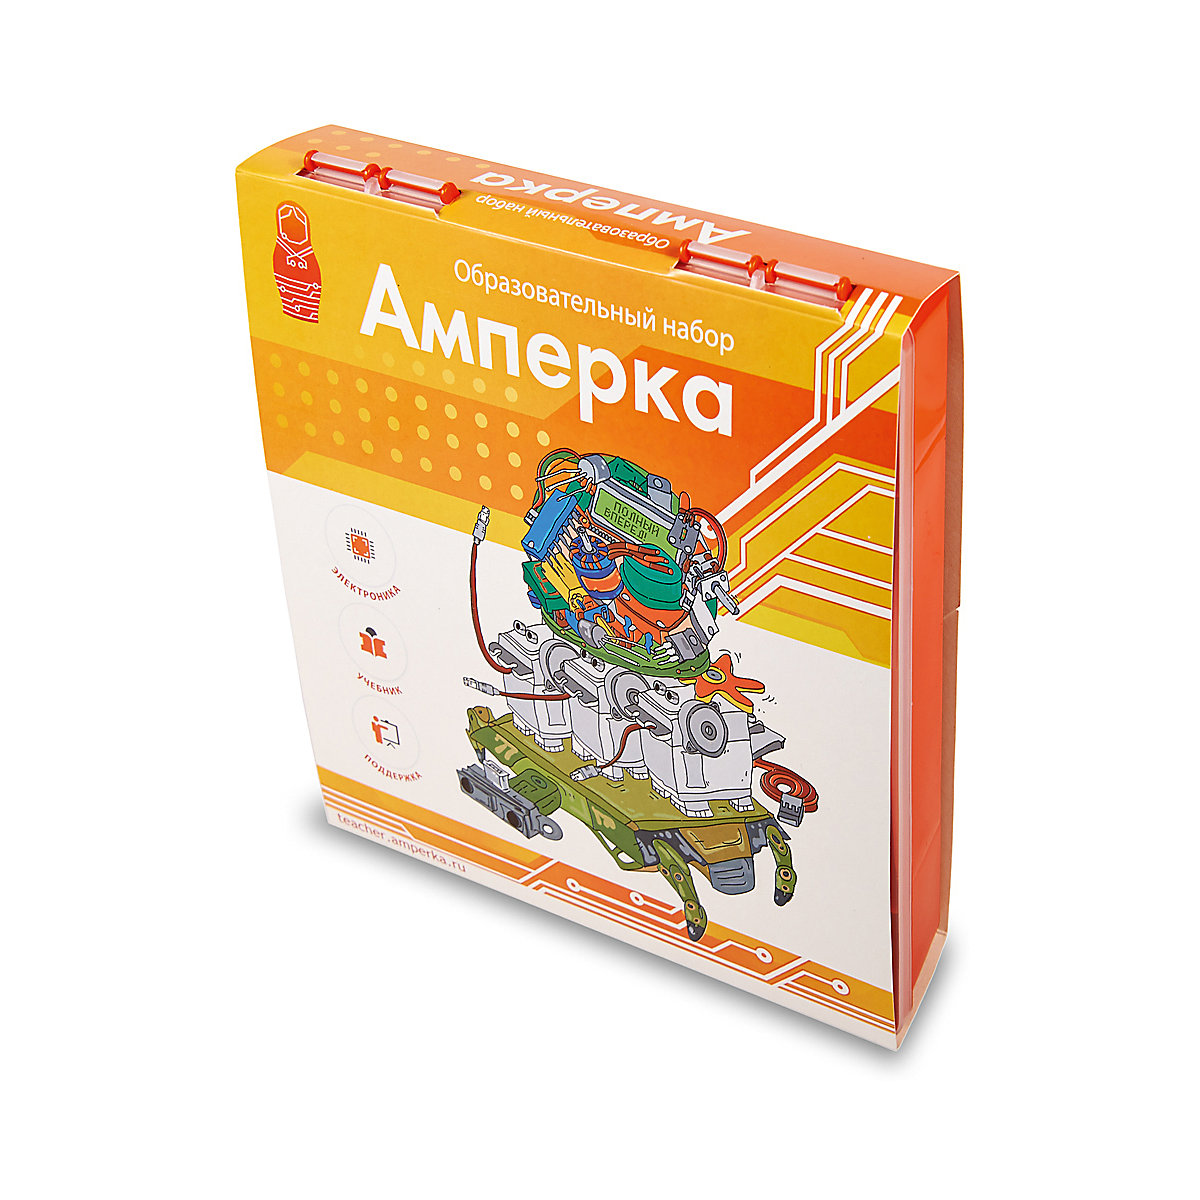 AMPERKA Blocks 5427690 toys for boys girls building construction educational developing toy game play team modeling boy girl gonlei 7062 lepin technic convertible car building bricks blocks toys for children boy game bela